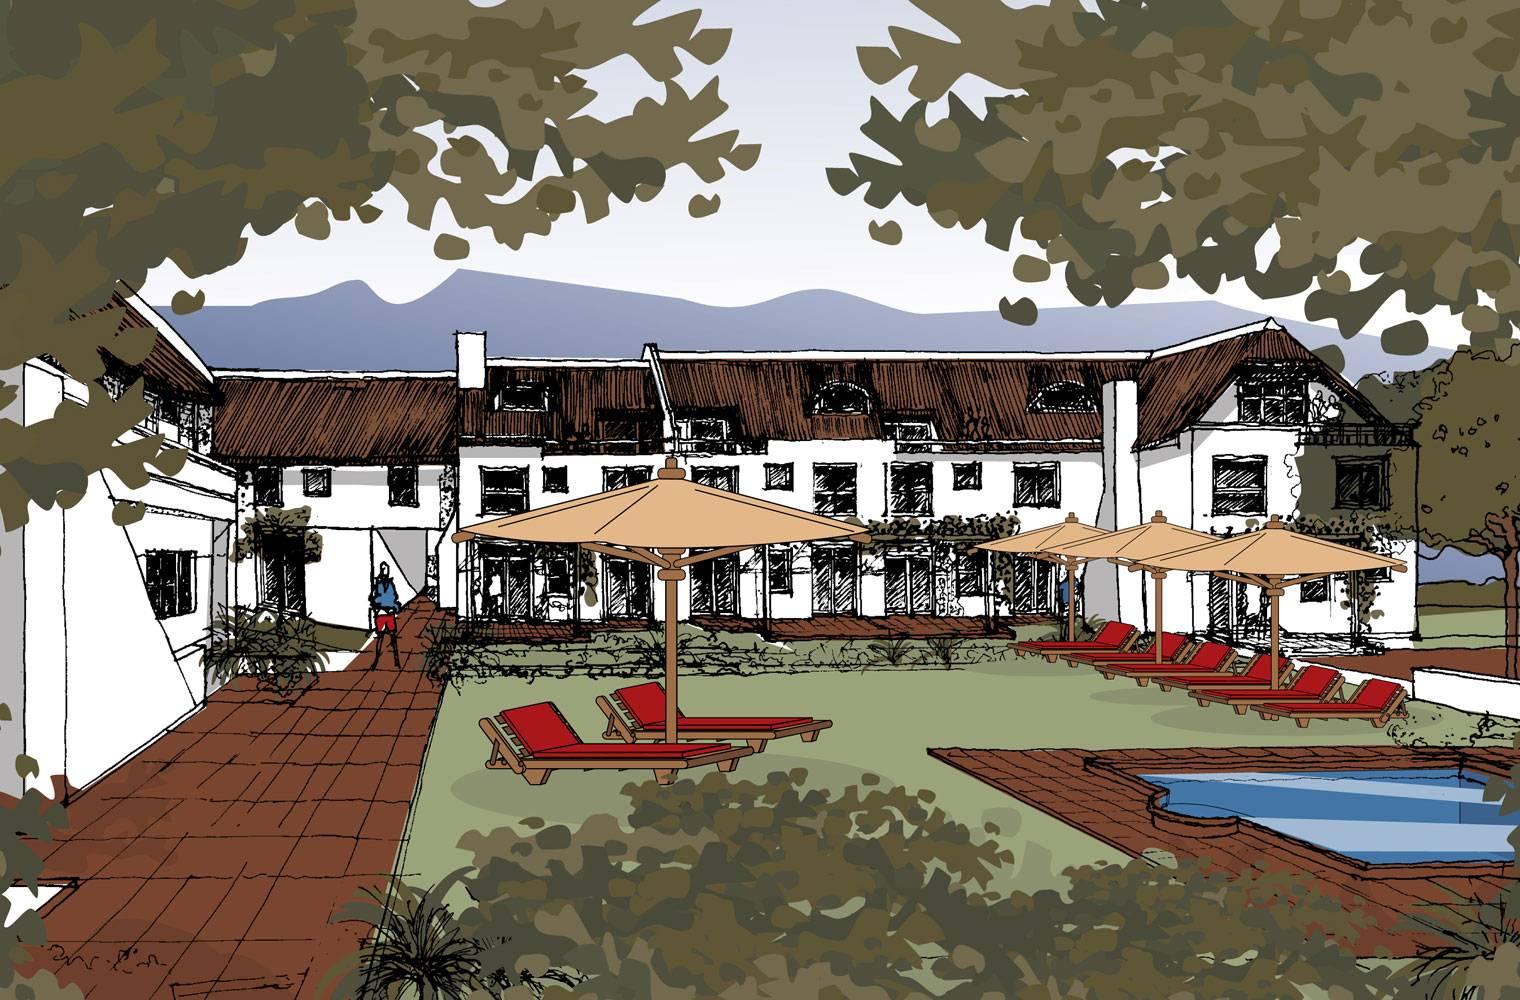 St. Francis Bay - Concept Rendering